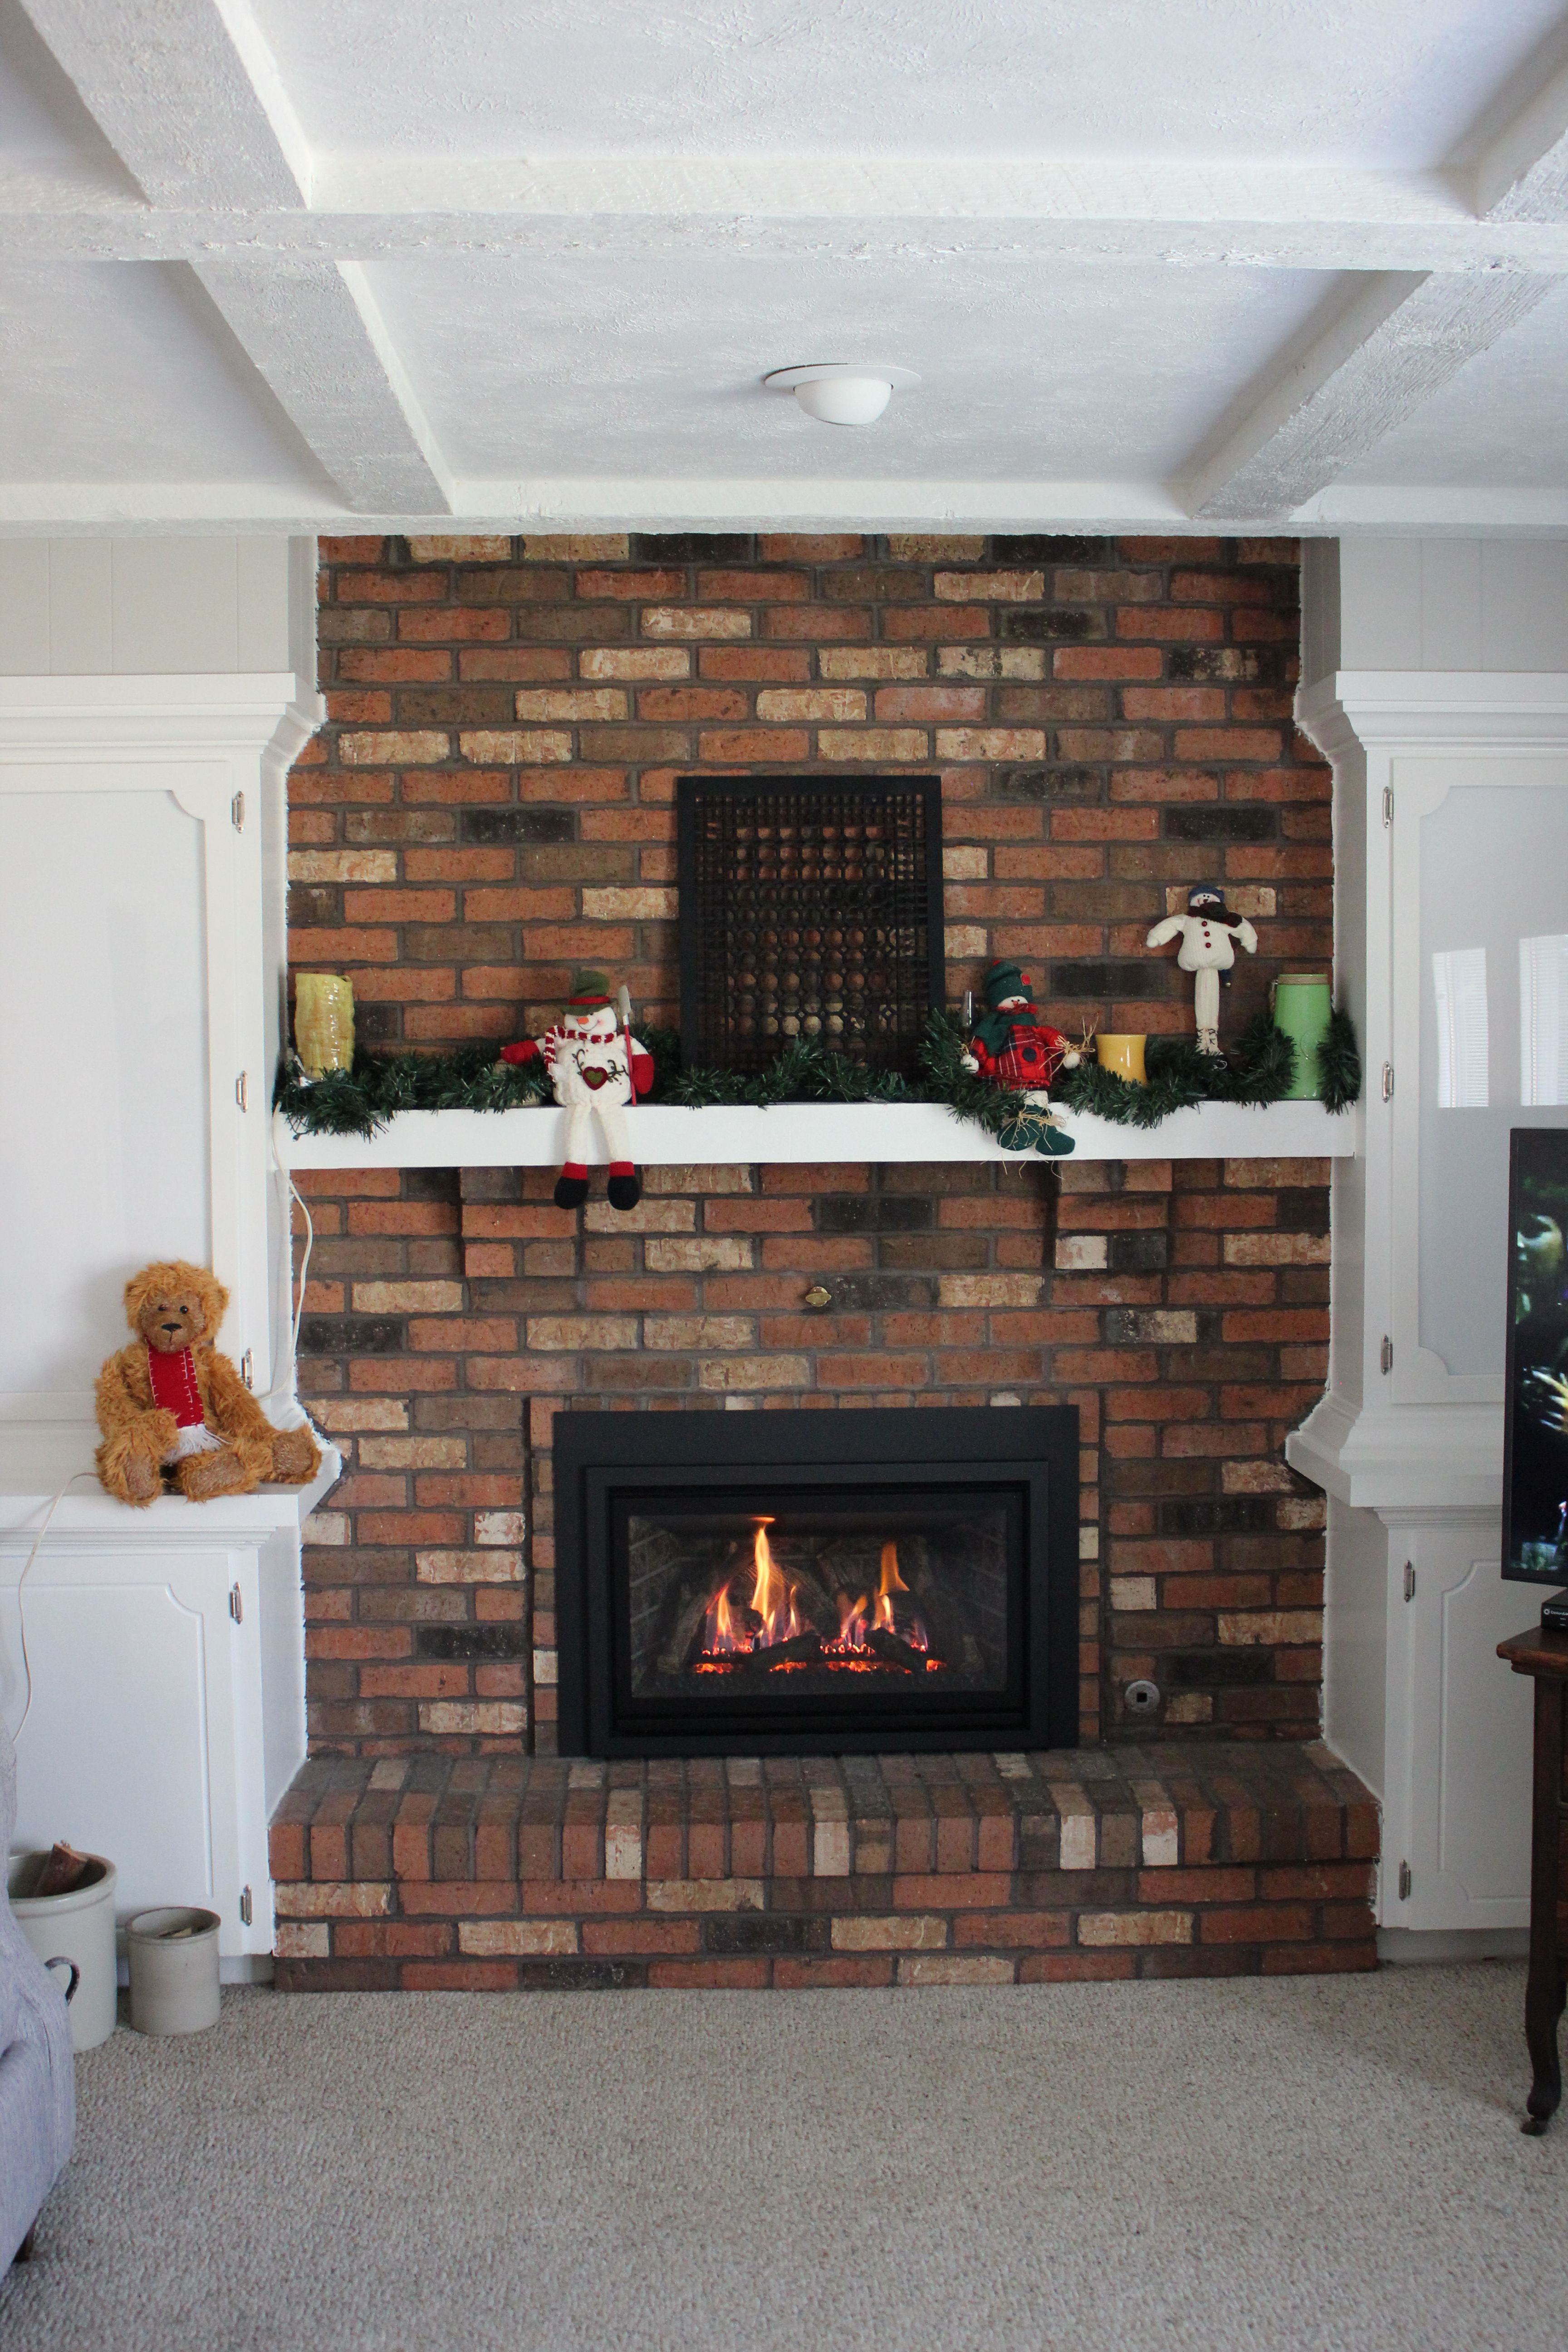 Adding an insert to an old masonry fireplace might be just